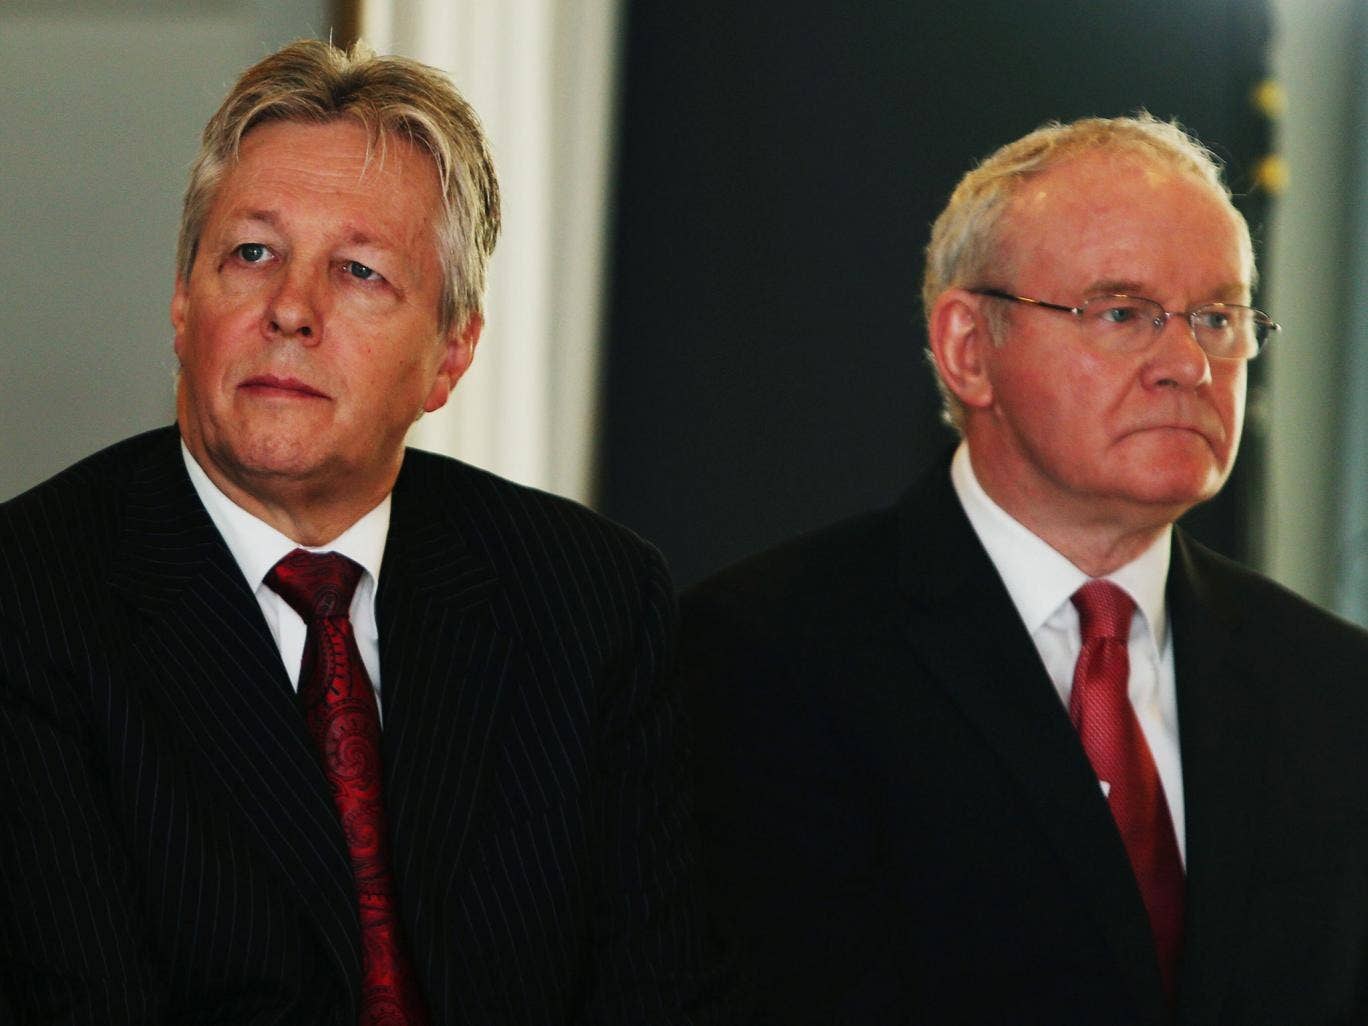 Northern Ireland First Minister Peter Robinson, left, and deputy First Minister Martin McGuinness; McGuinness accused unionist parties of 'dancing to the tune of extremists'